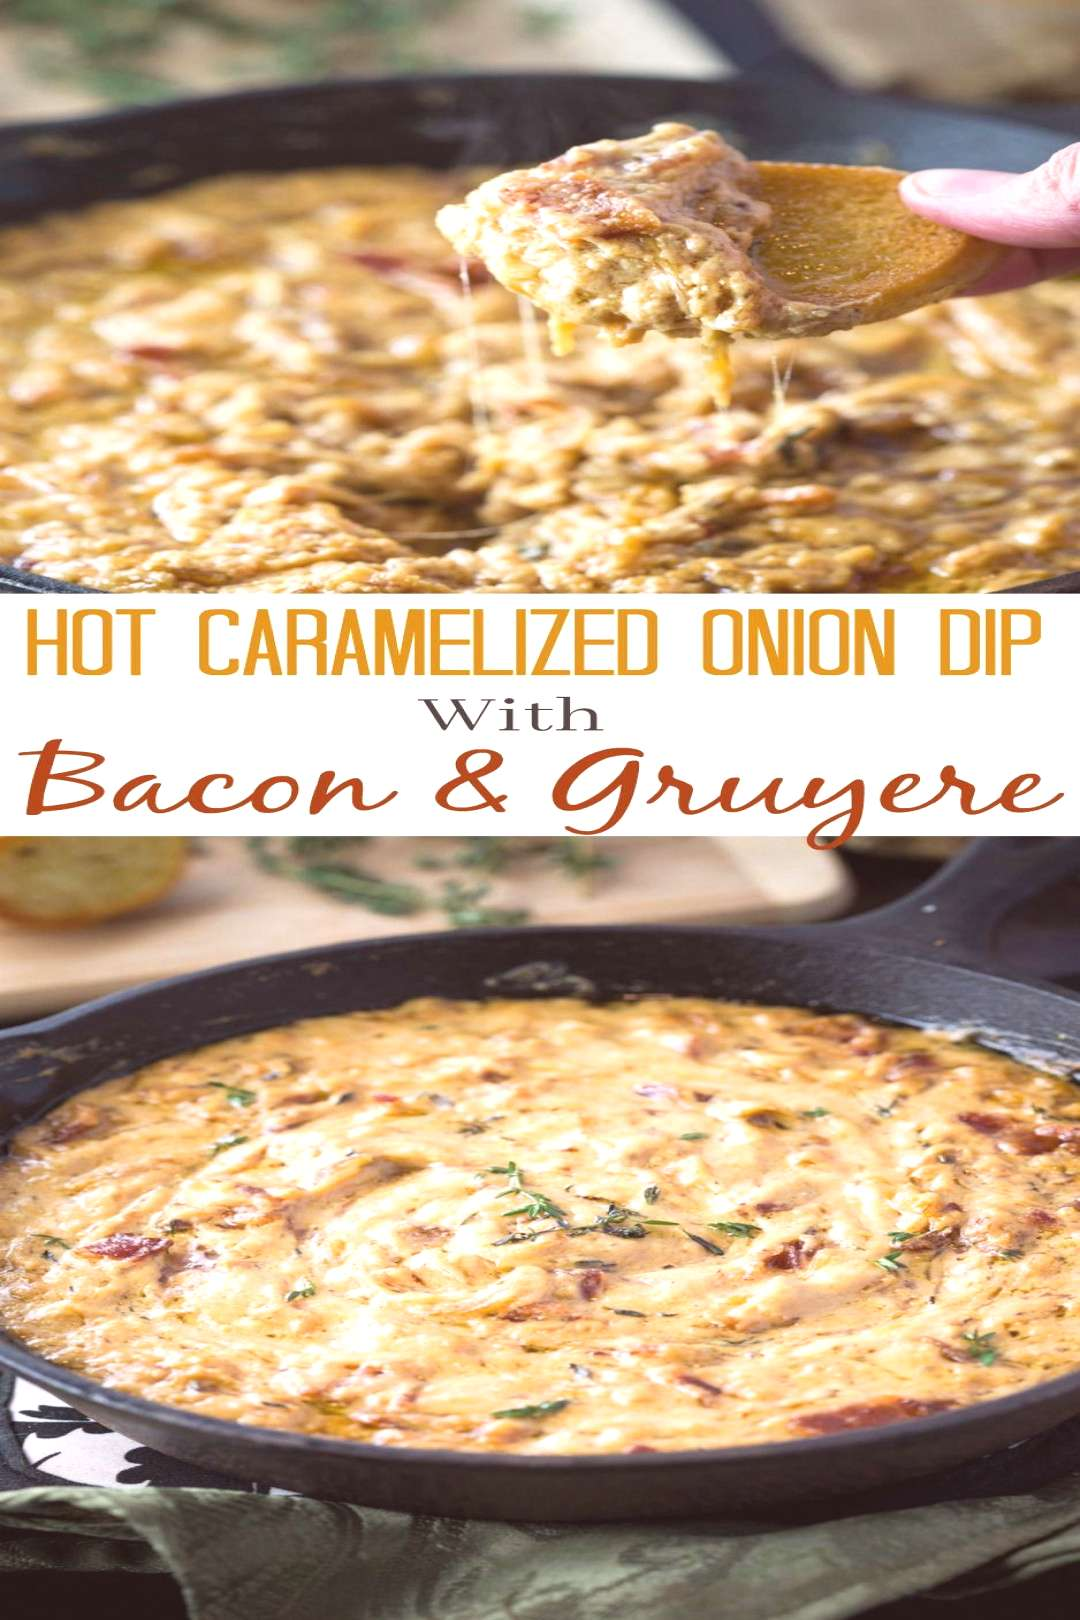 Slow cooked caramelized onions smothered in a warm Gruyere dip with bits of bacon and warm bread fo